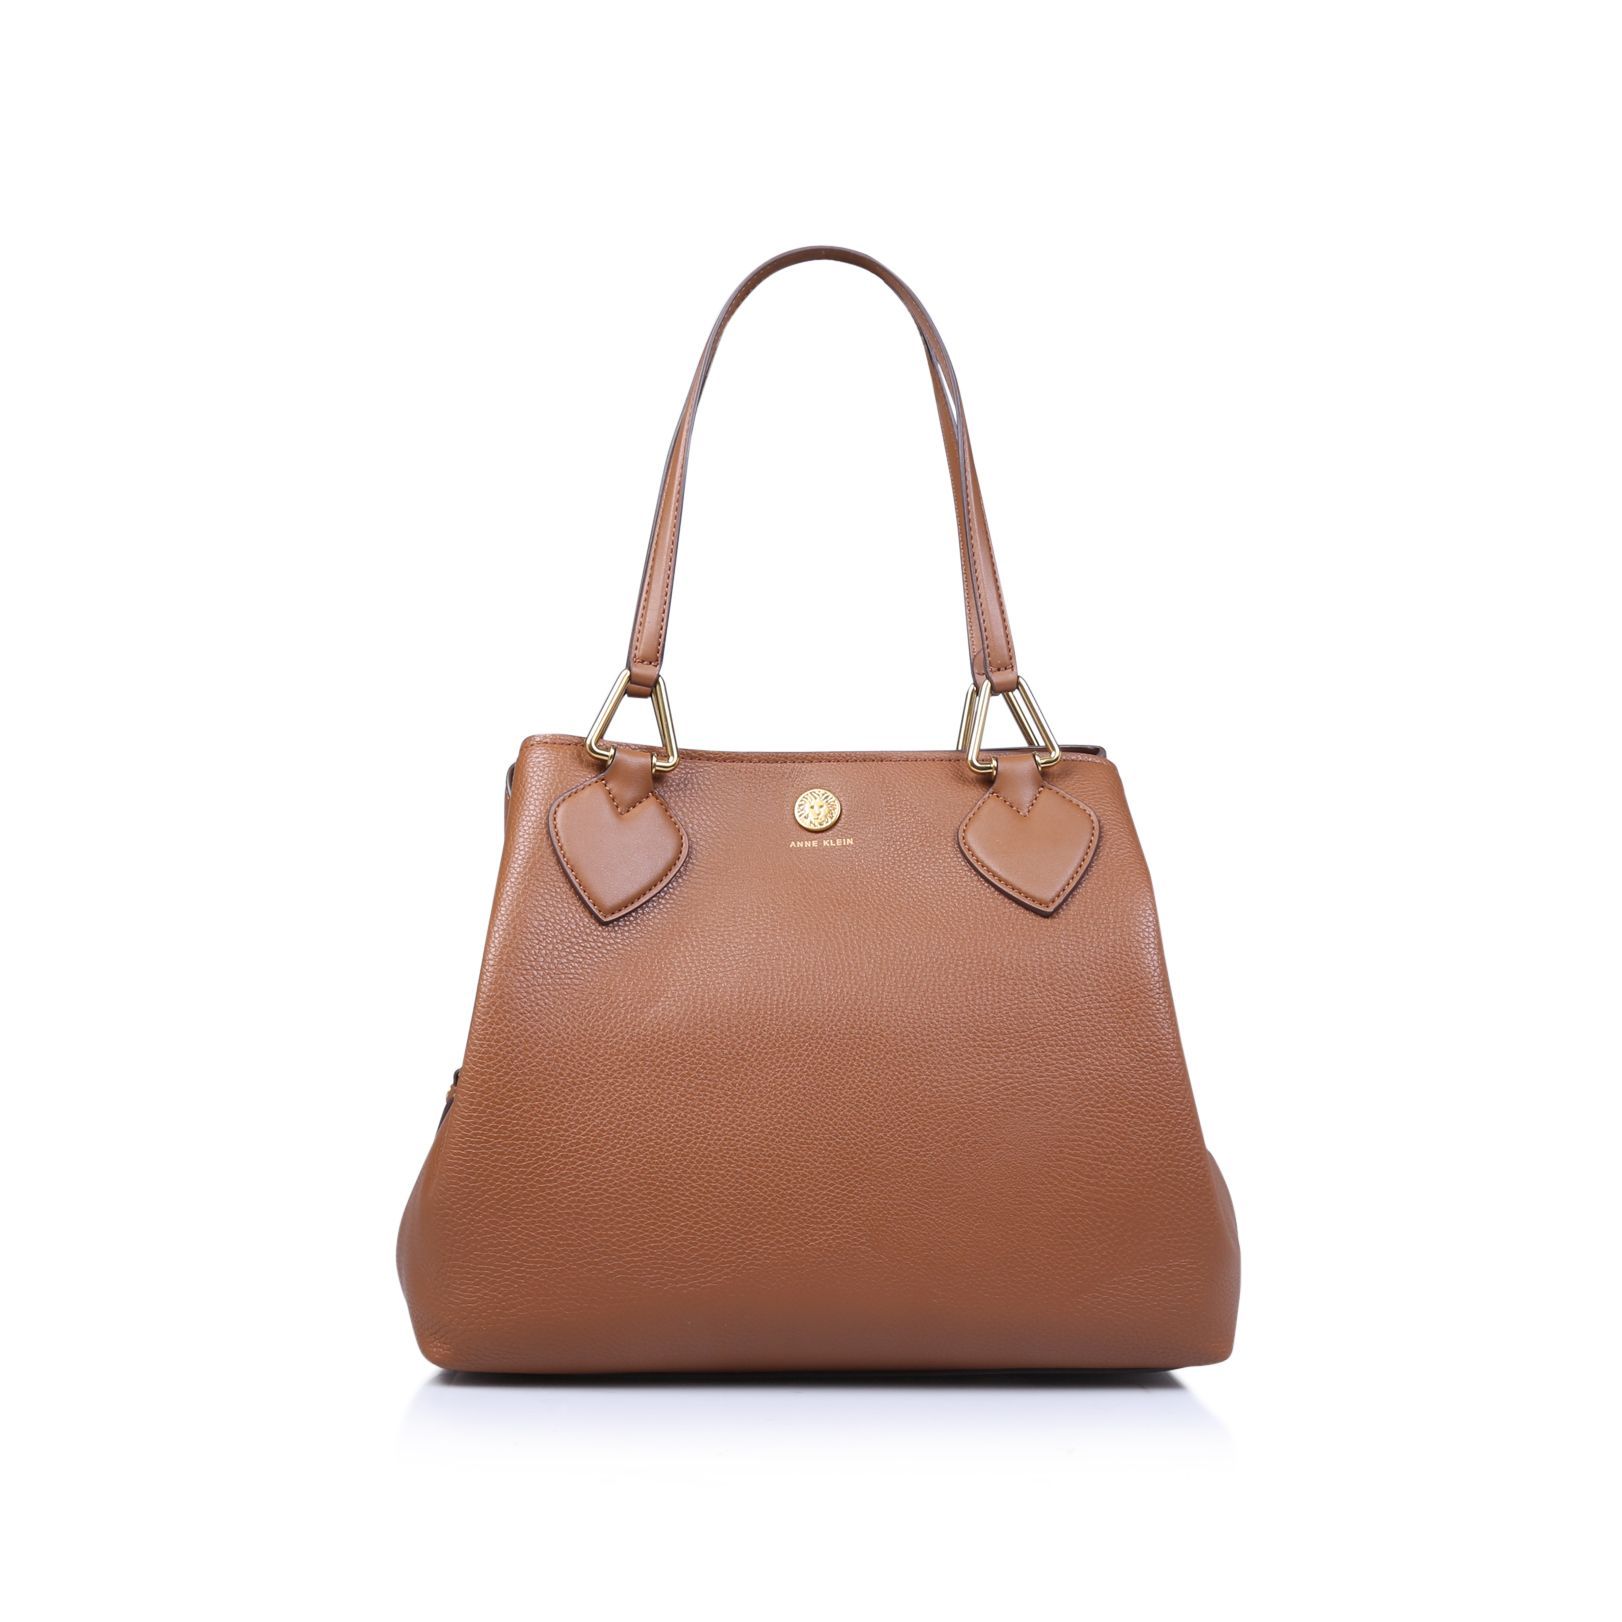 Anne Klein Hinge Tote, Brown